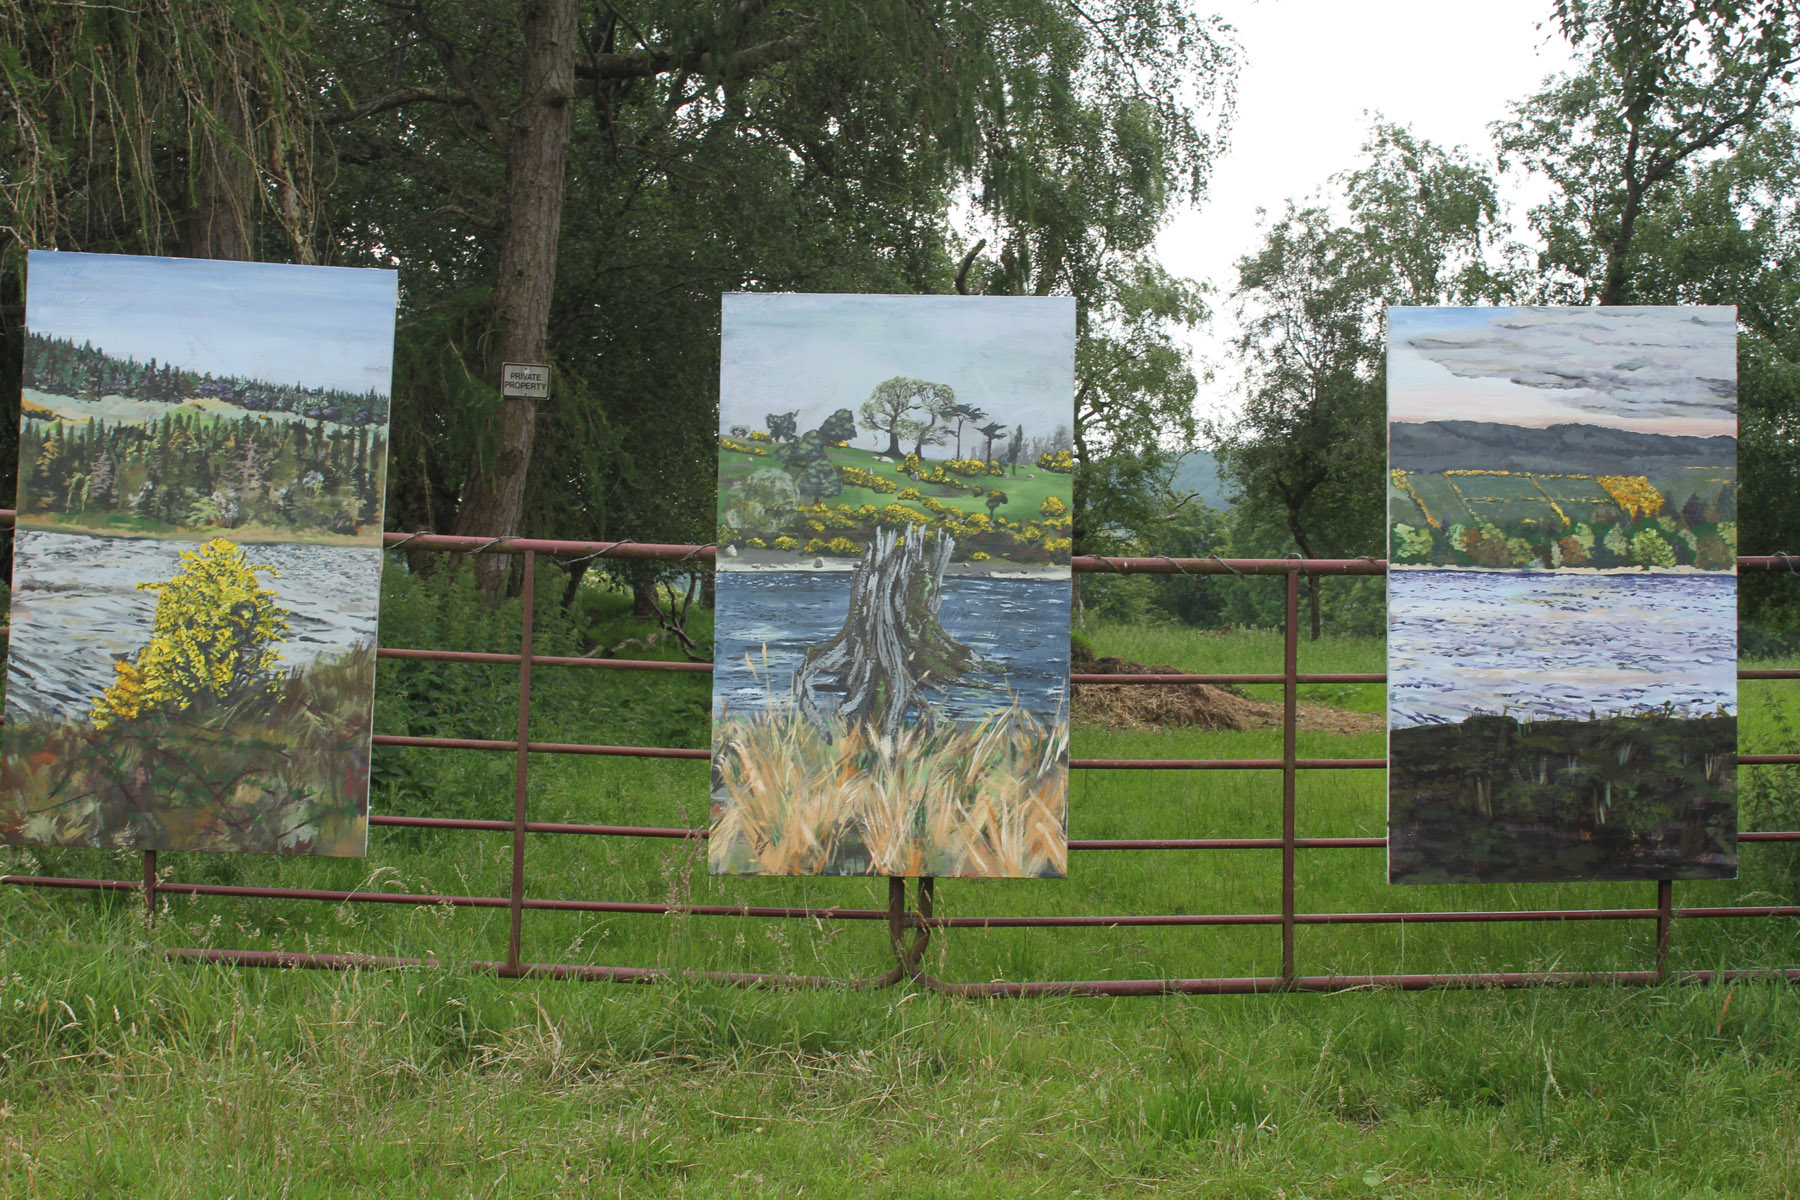 Paintings installed for the in ait exhibition in Valleymount, Wicklow, 2020